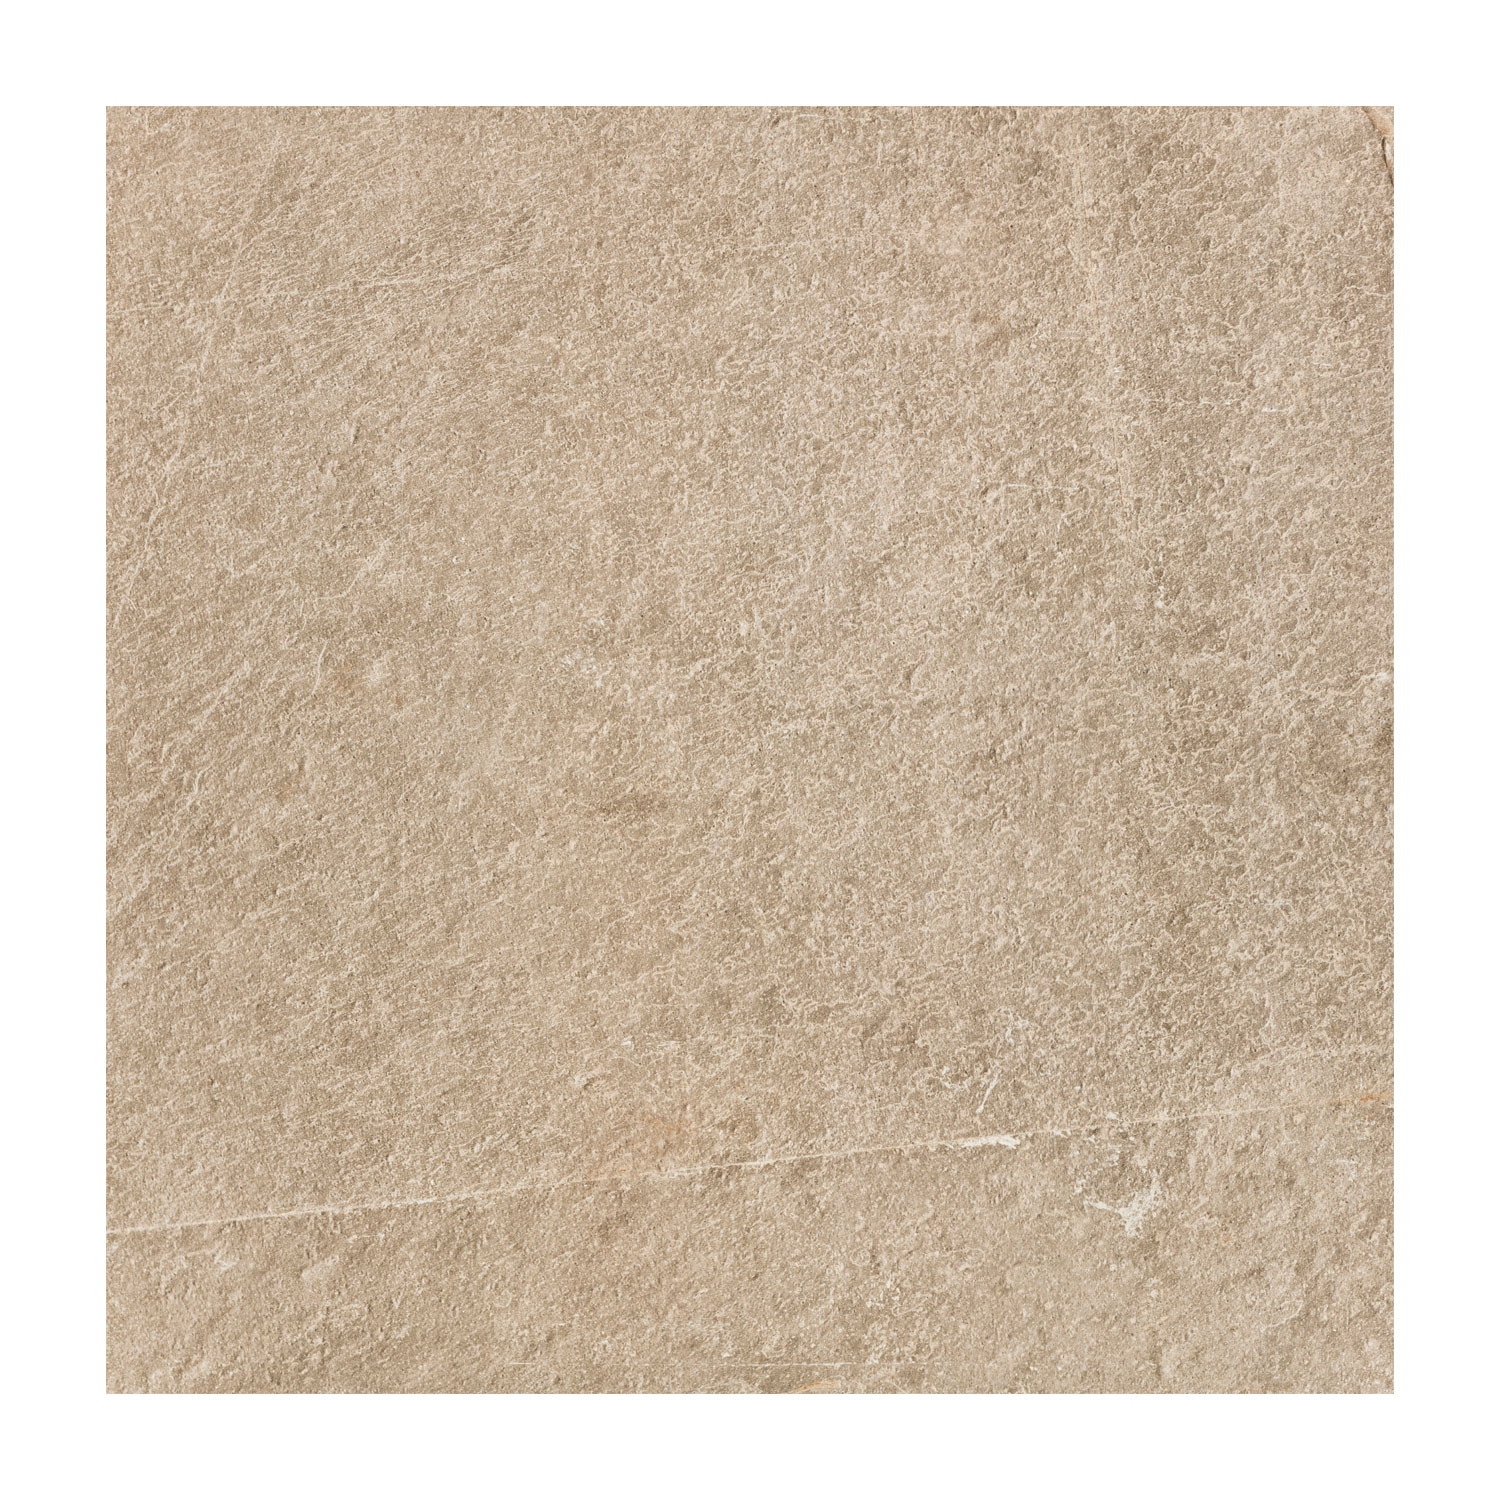 RAK Shine Stone Porcelain Tile - 600mm H x 600mm W - Dark Beige (Box of 4)-0